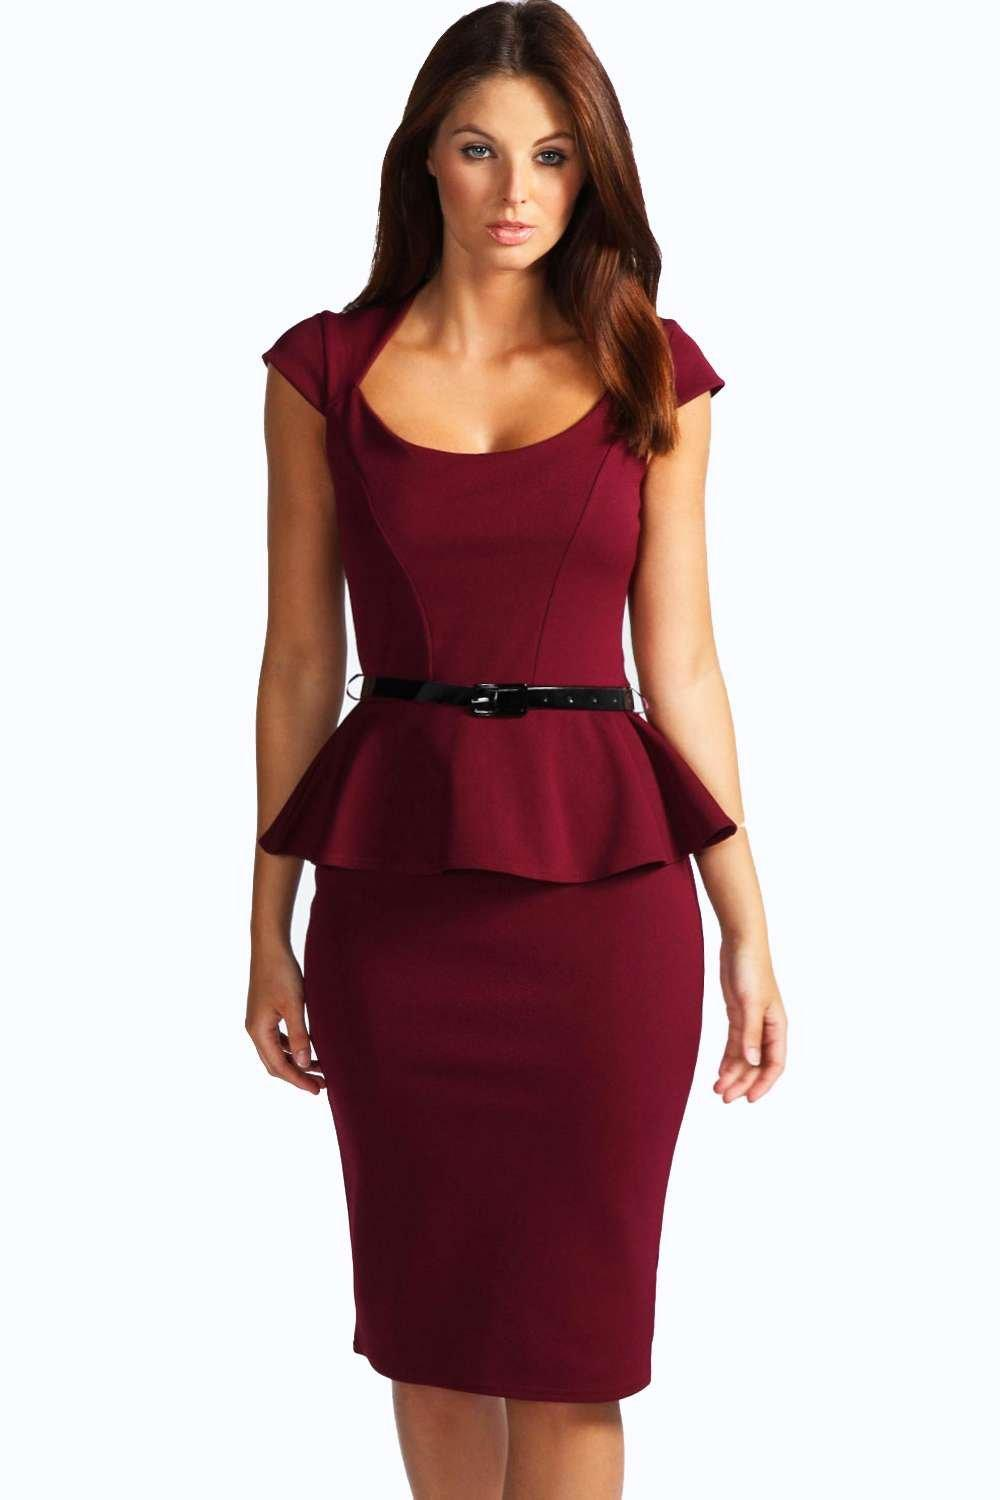 Features, strapless, sheer, peplum, no inner lining, padded bra, long length. % Polyester Shop sexy peplum dresses perfect for the club, find sexy peplum dresses for all occasions starting under $20 and get free shipping on orders over $